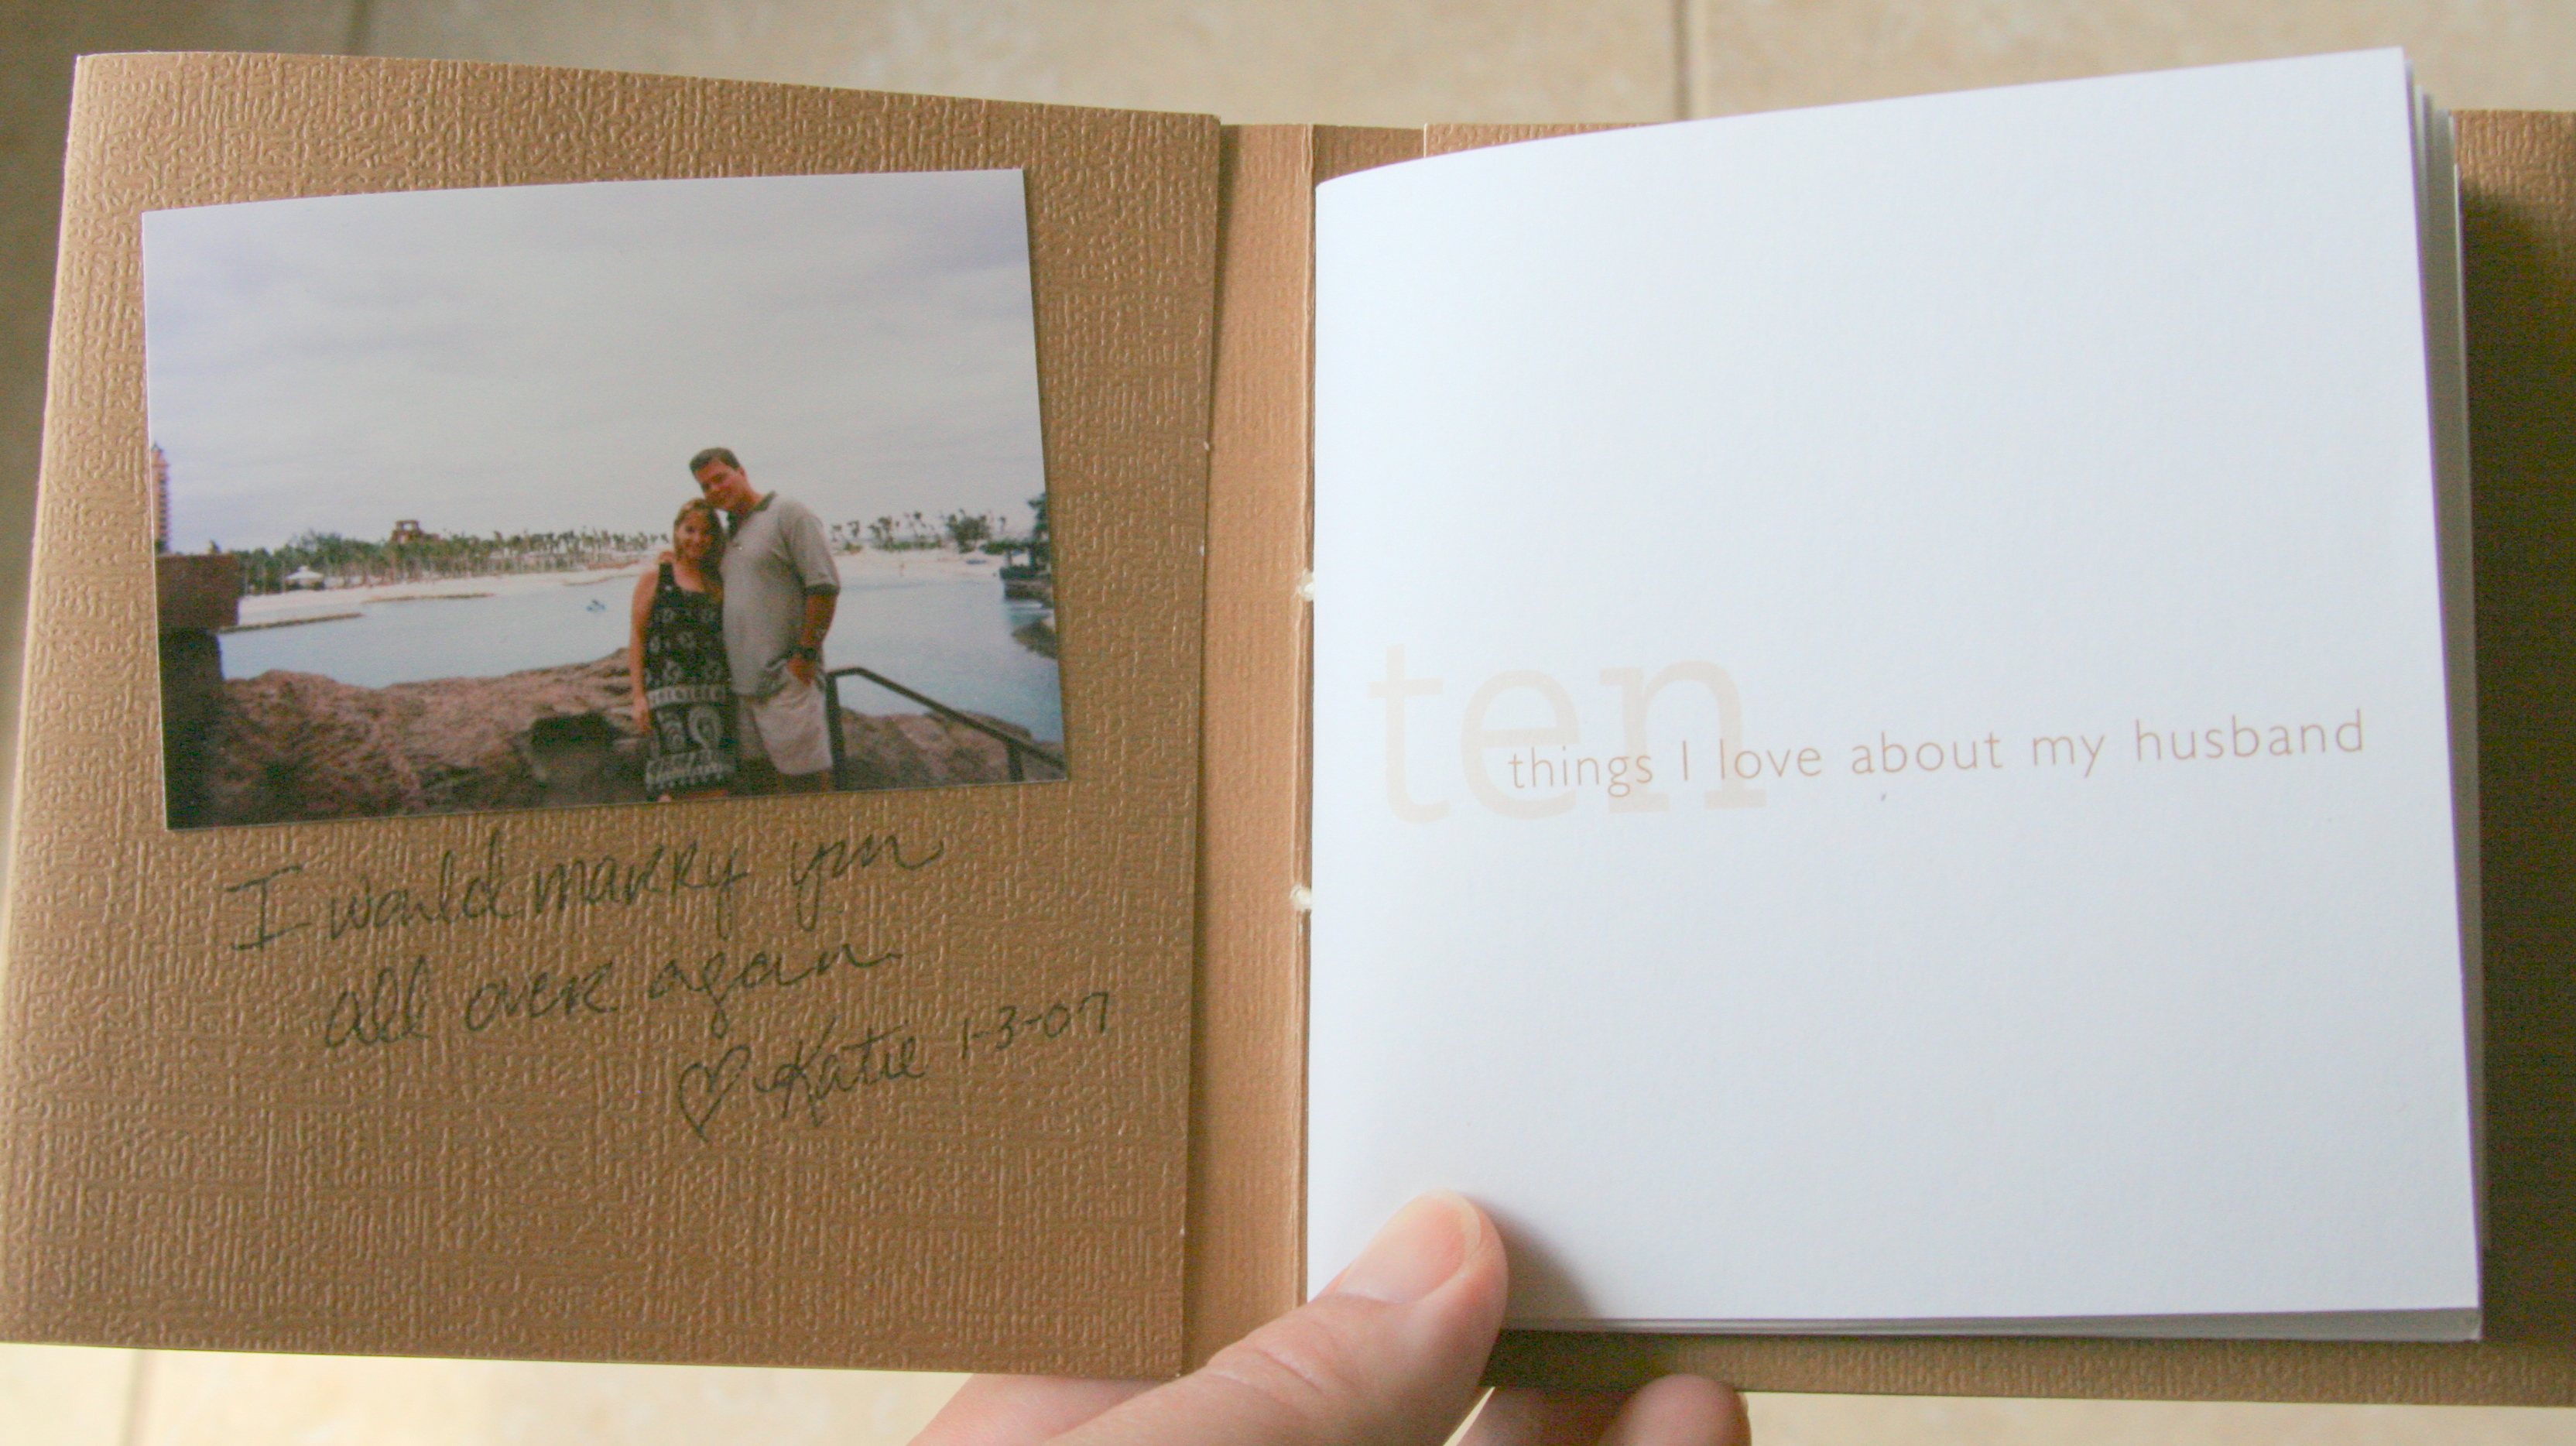 Scrapbook ideas relationships - For More Ideas About Scrapbooking Your Marriage Or Relationship Check Out These Items